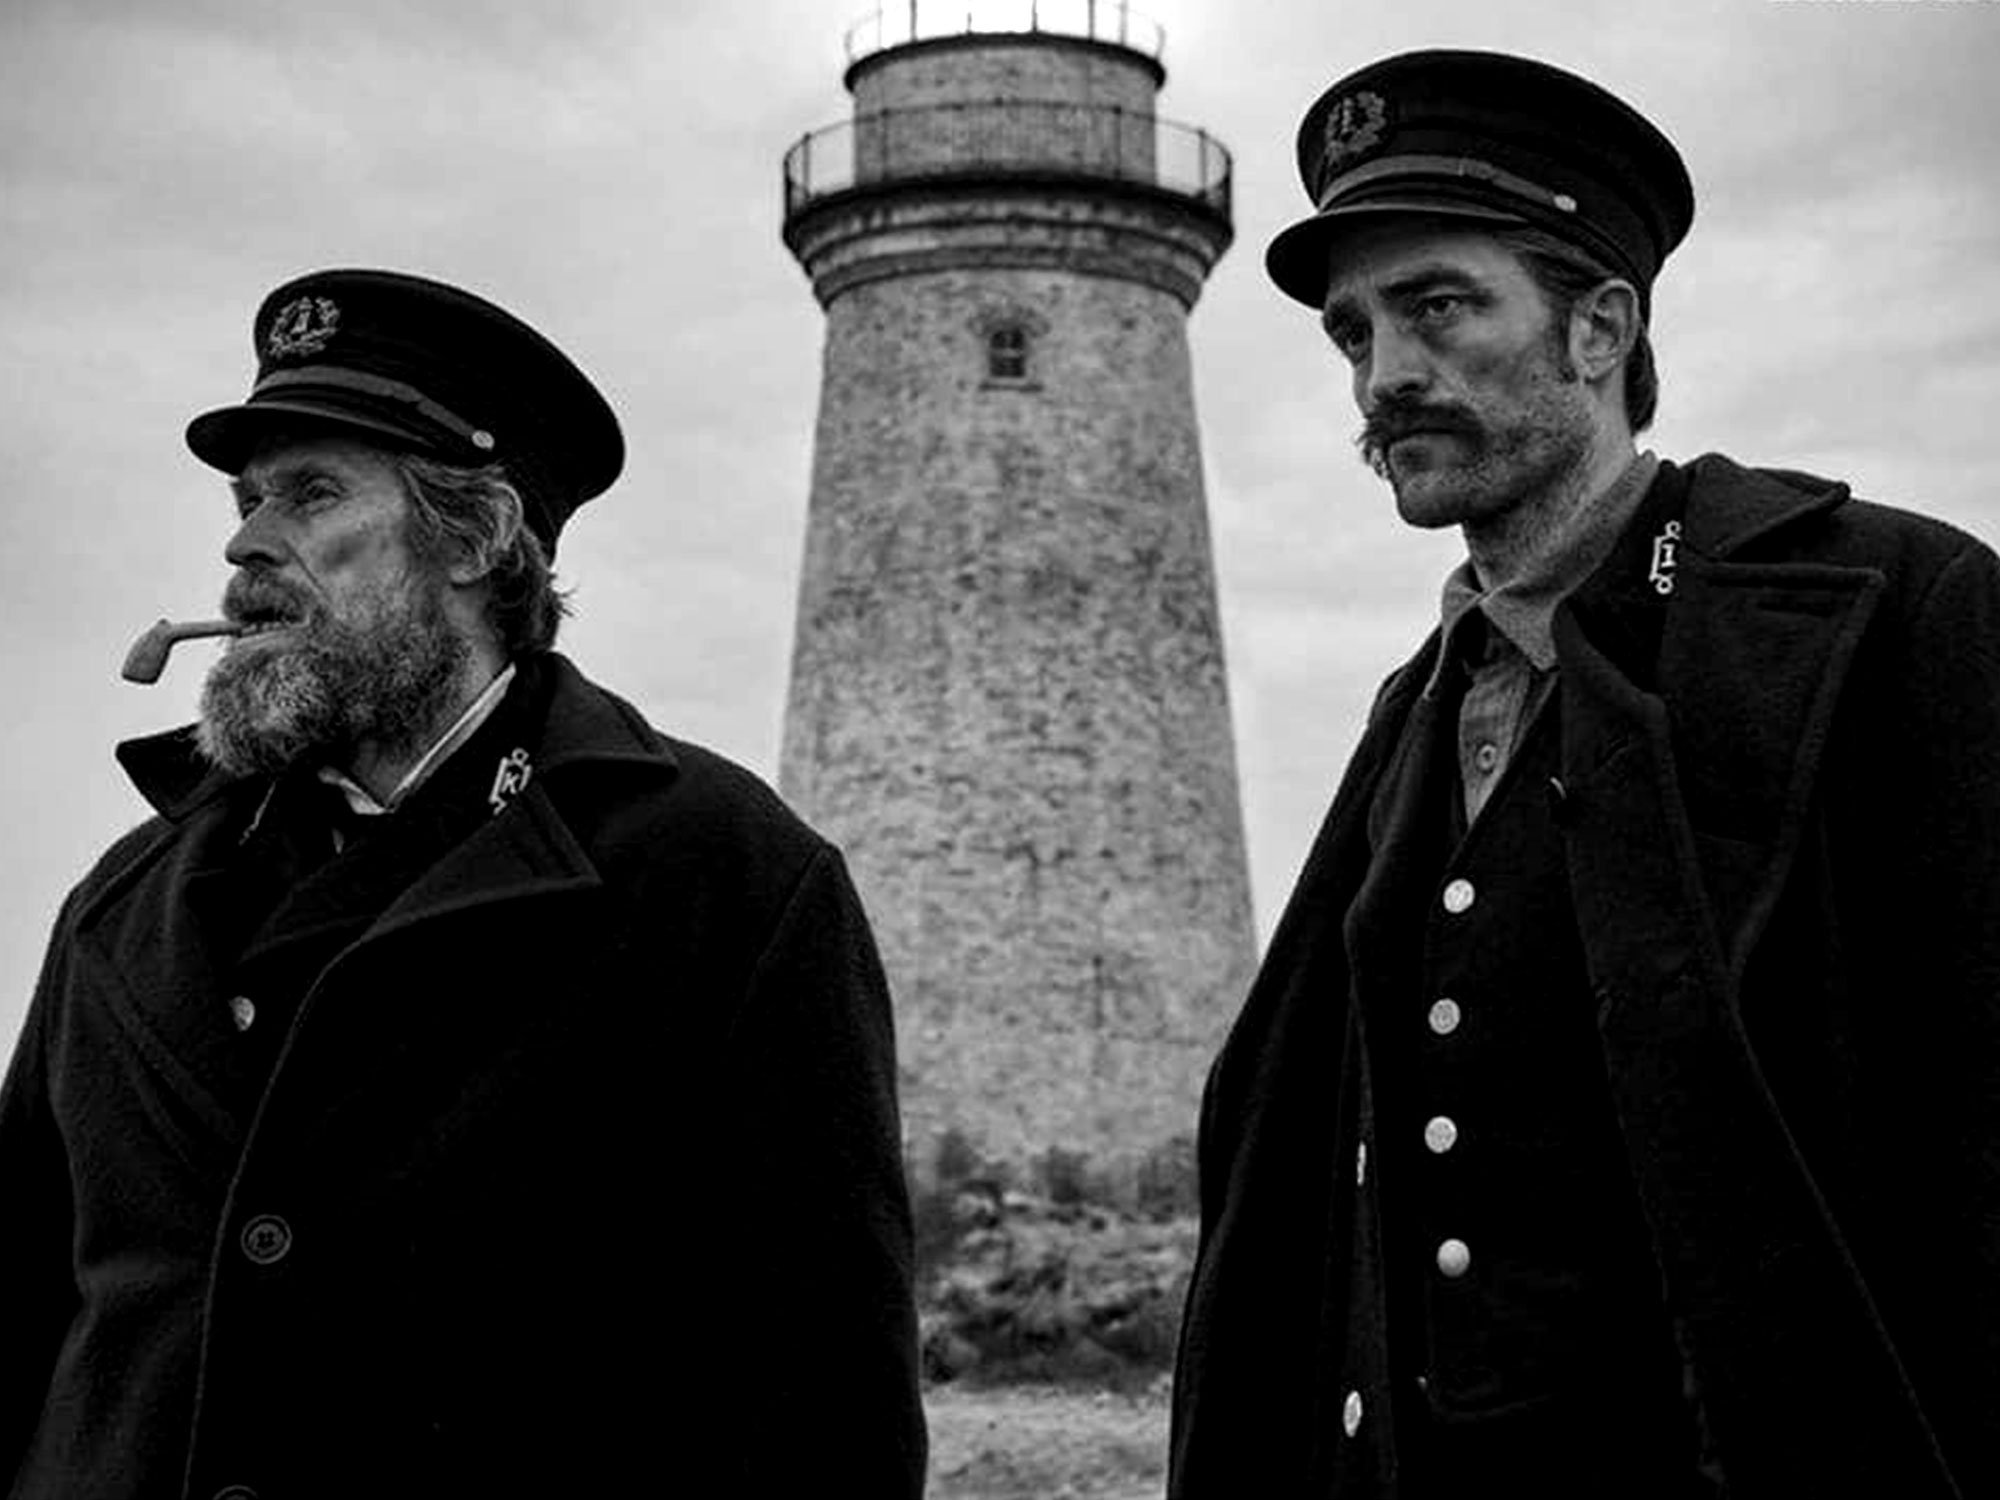 'The Lighthouse': Critics Say 'The Witch' Director's Follow-Up Gives Robert Pattinson Best Role Yet